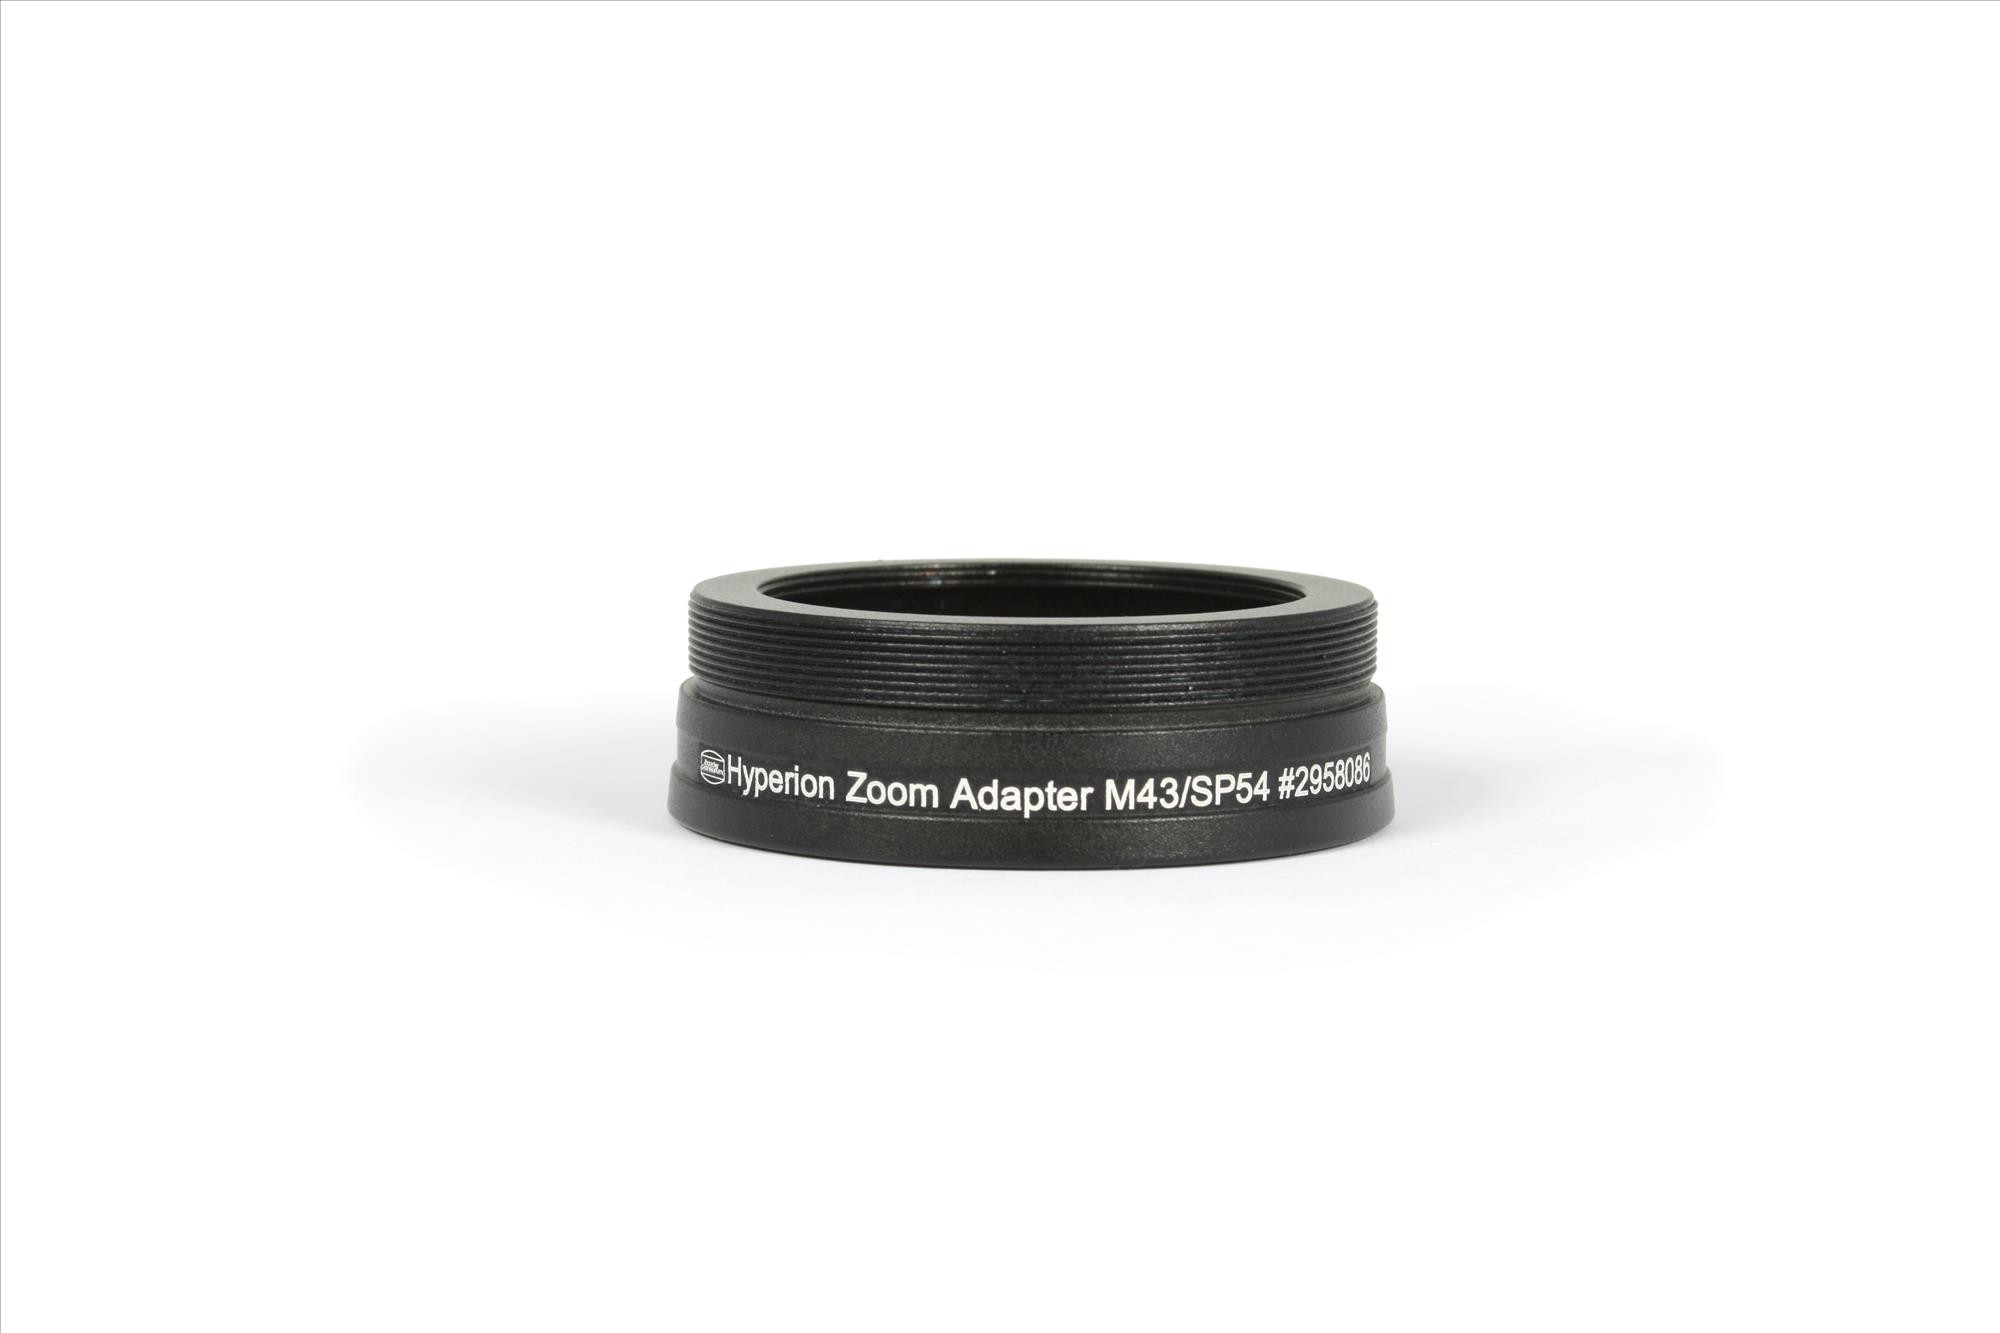 Hyperion Zoom M43/SP54 Adapter